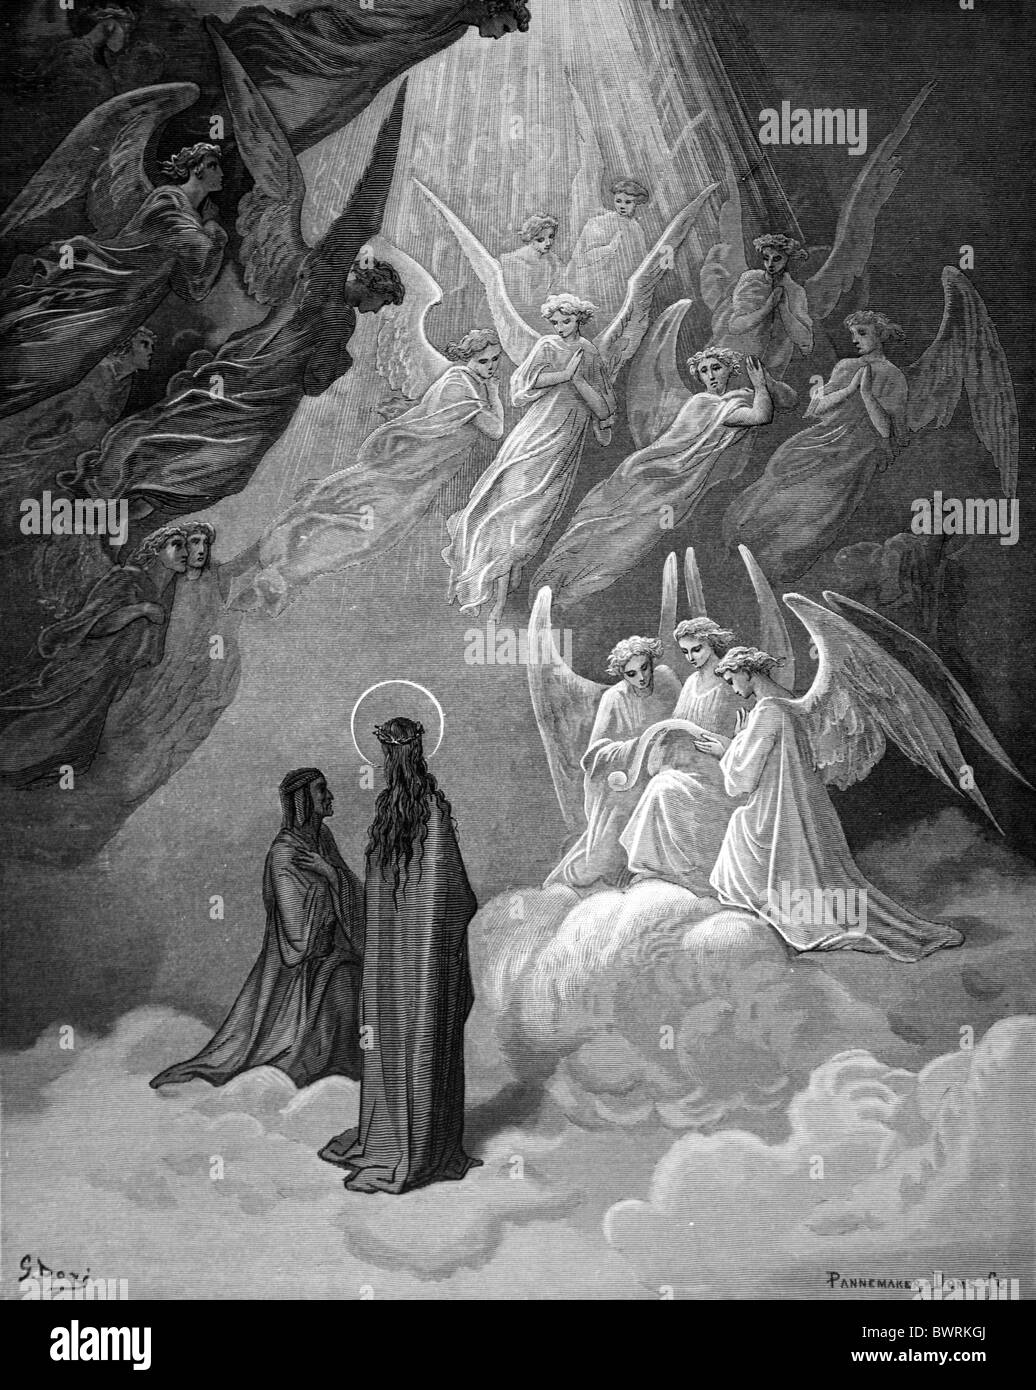 Gustave Doré; The Singing of the Blessed in the Sixth Heaven from Dante Alighieri's Divine Comedy; Black - Stock Image